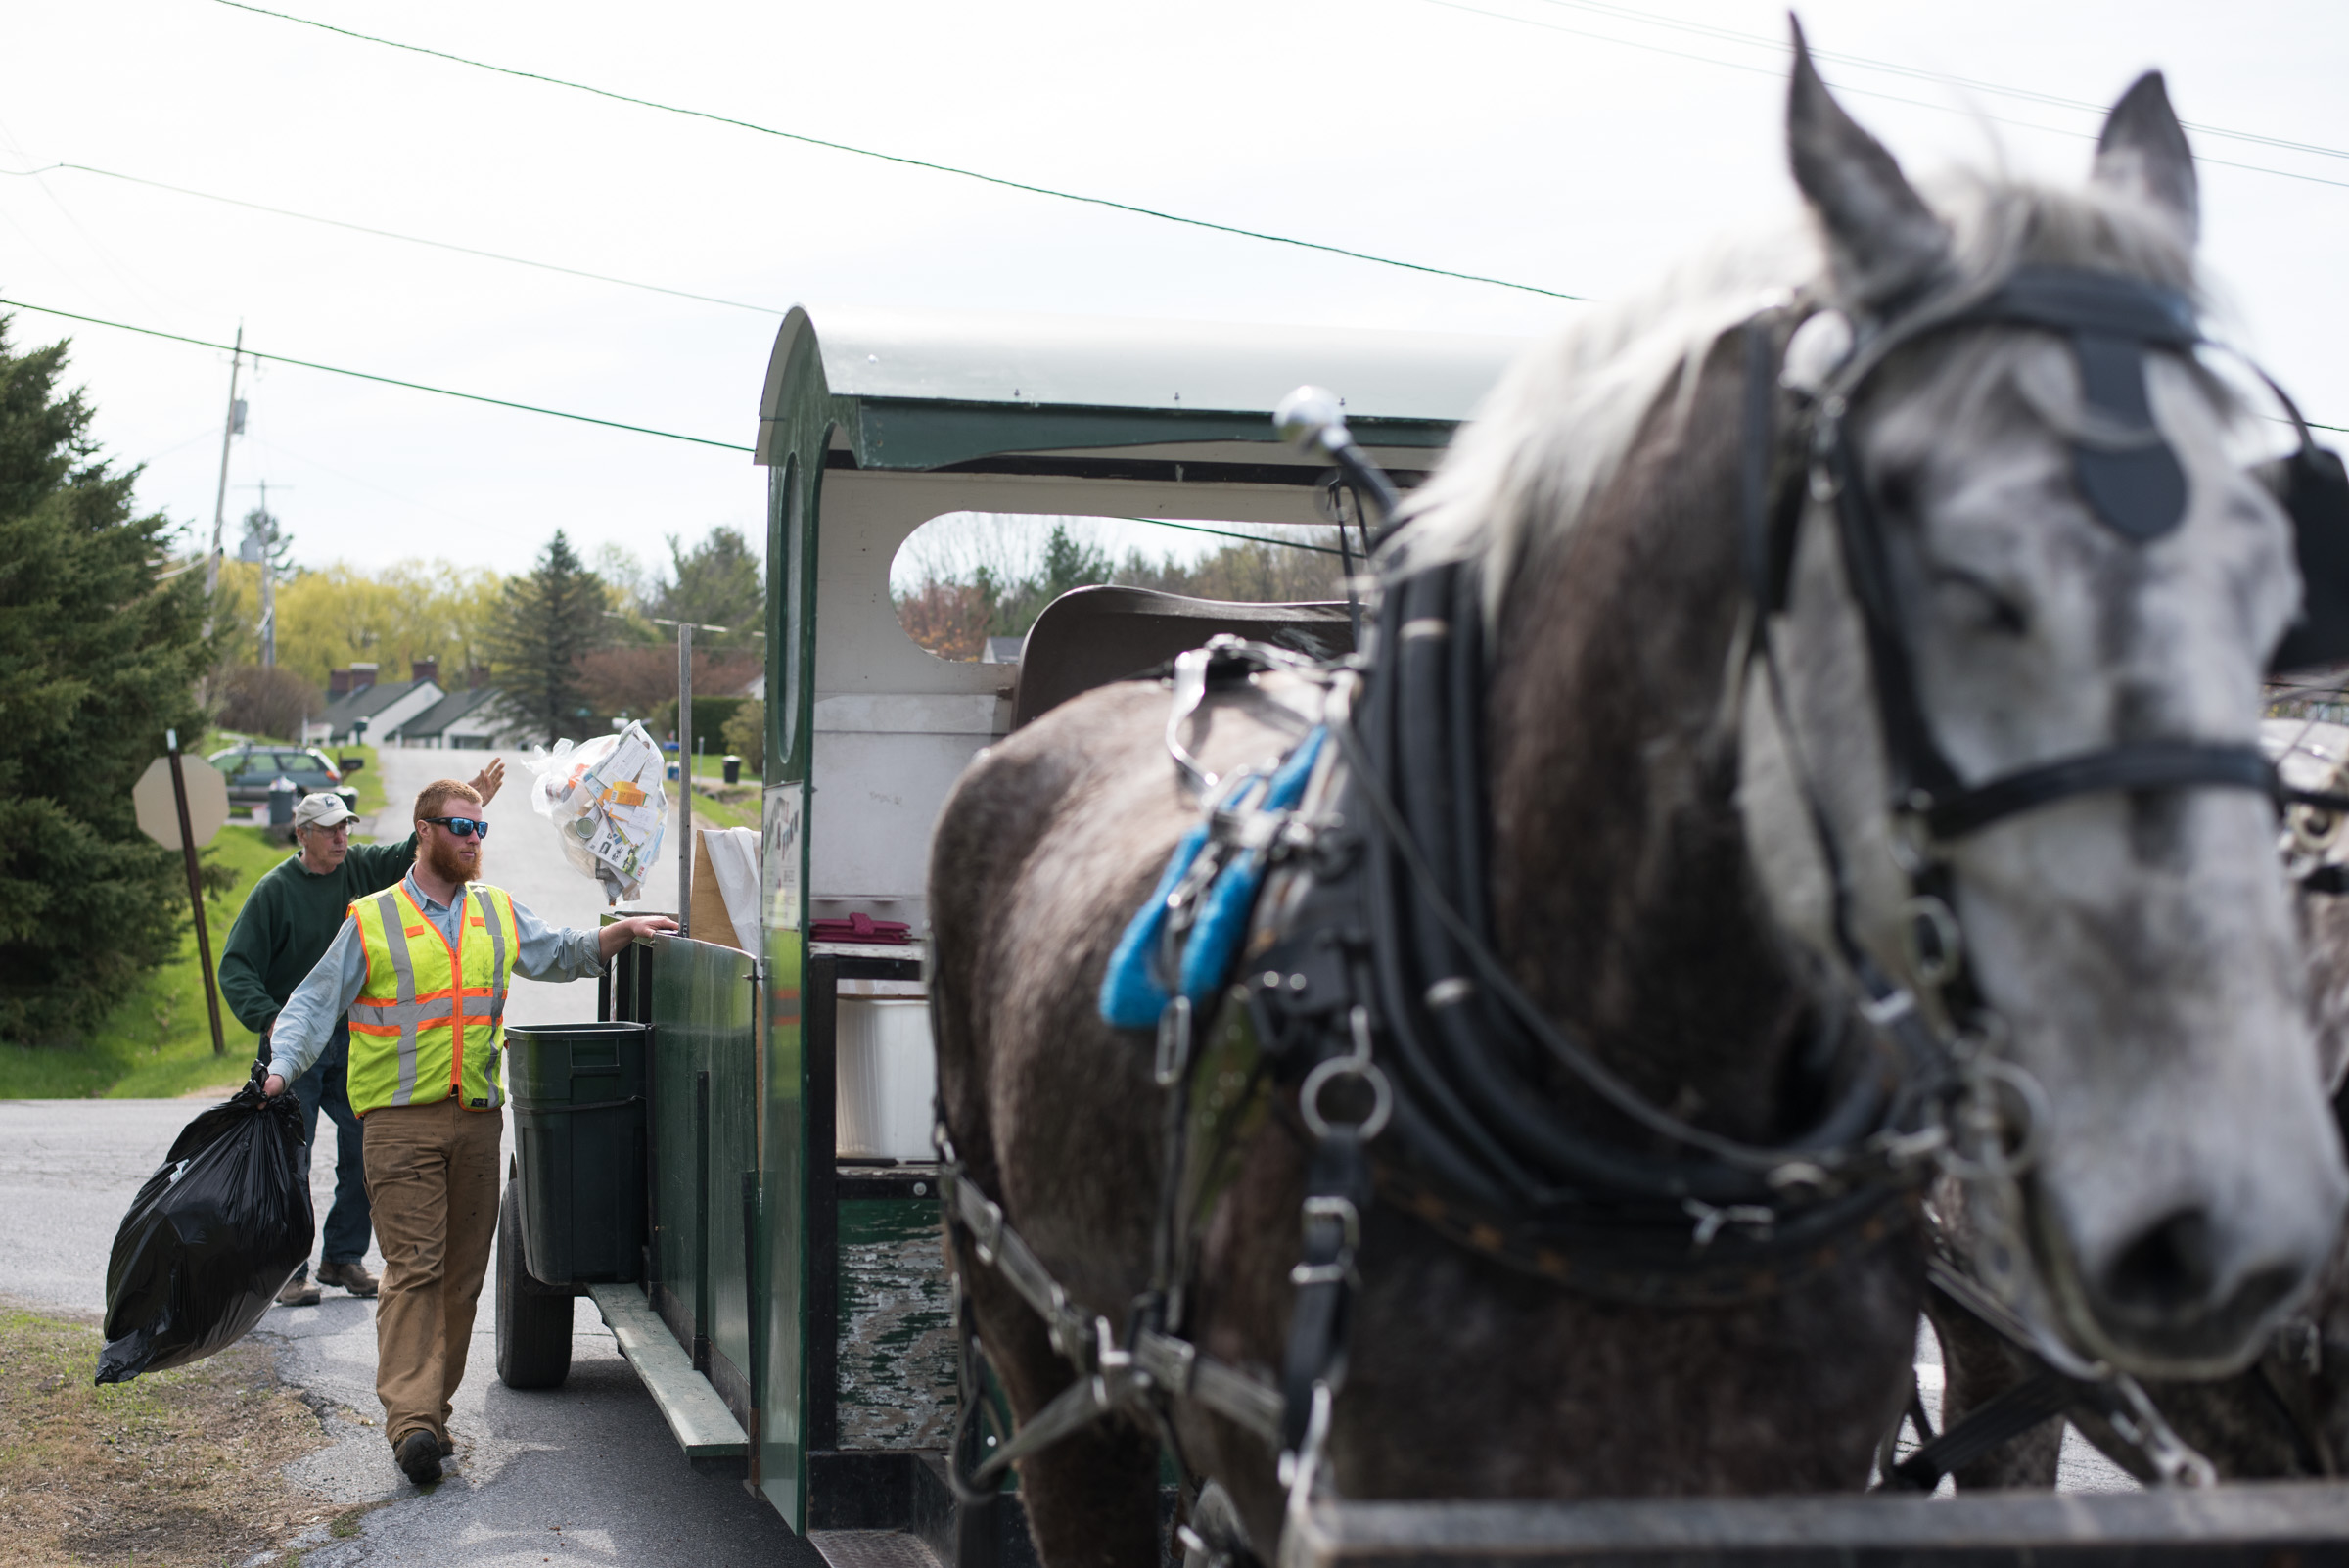 Horse drawn garbage collection coming to Blueridge, North Vancouver